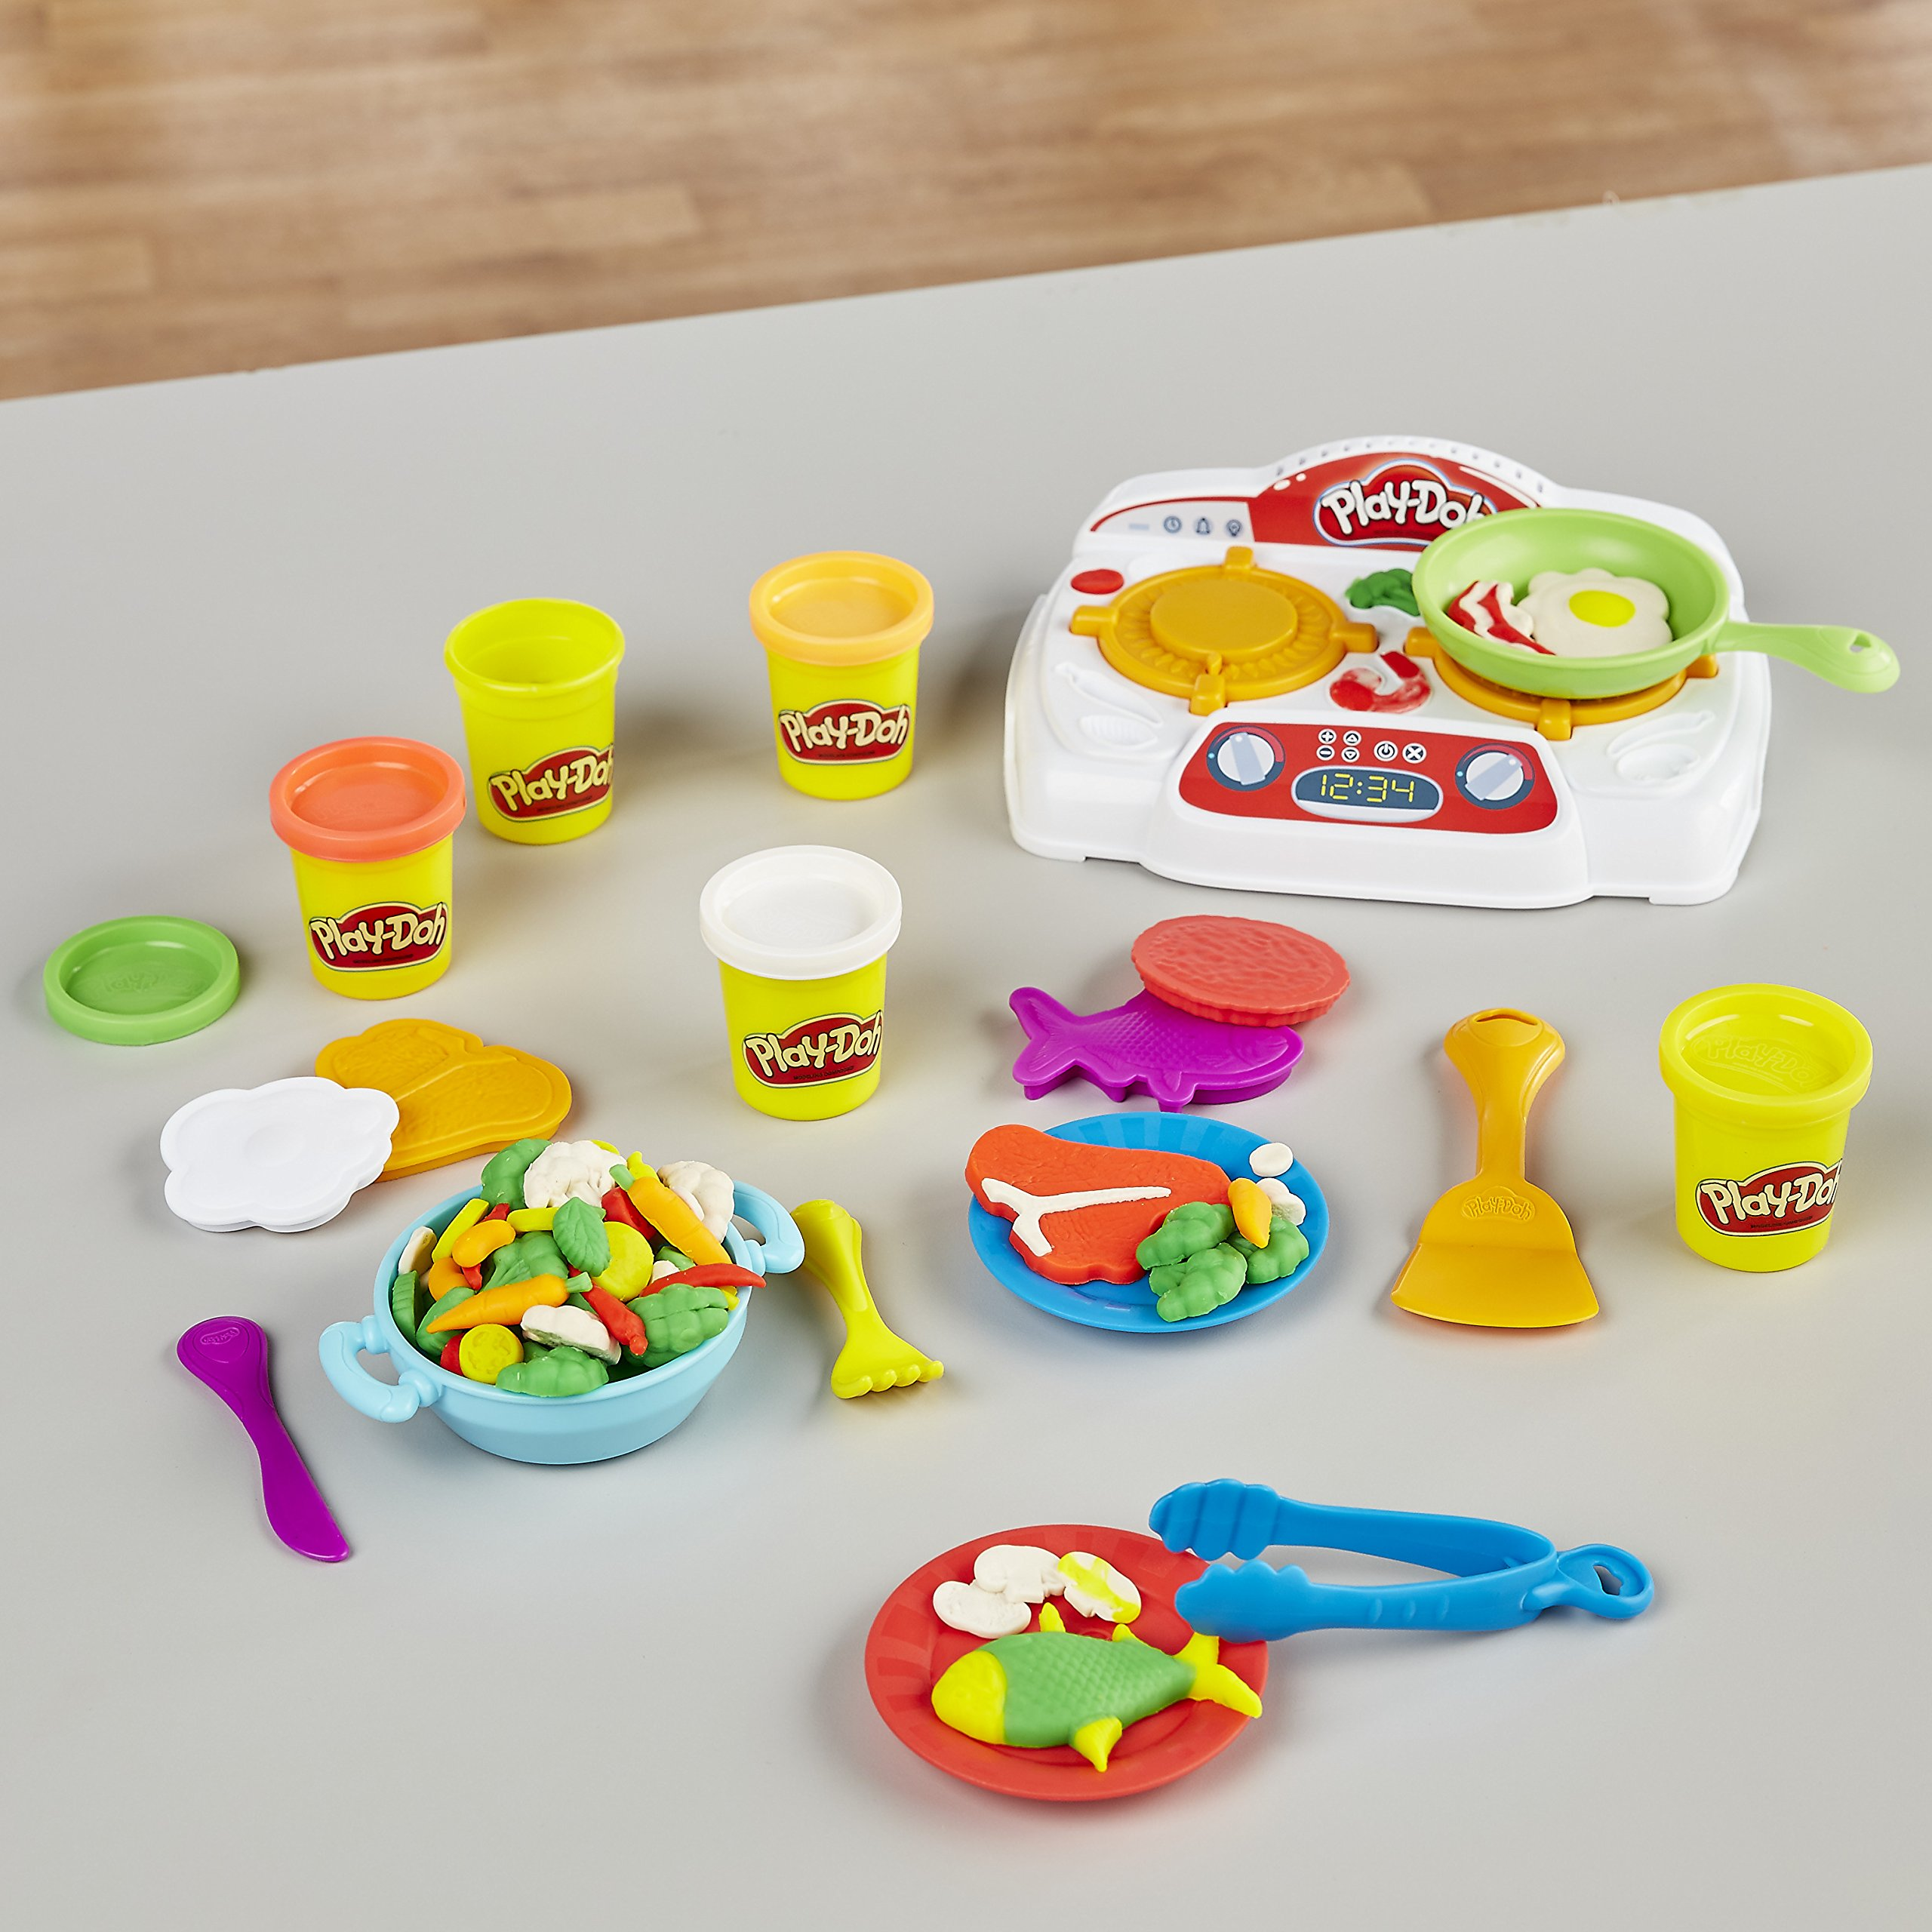 Play-Doh - B9014 - Kitchen Creations Sizzling Stovetop by Play-Doh (Image #7)